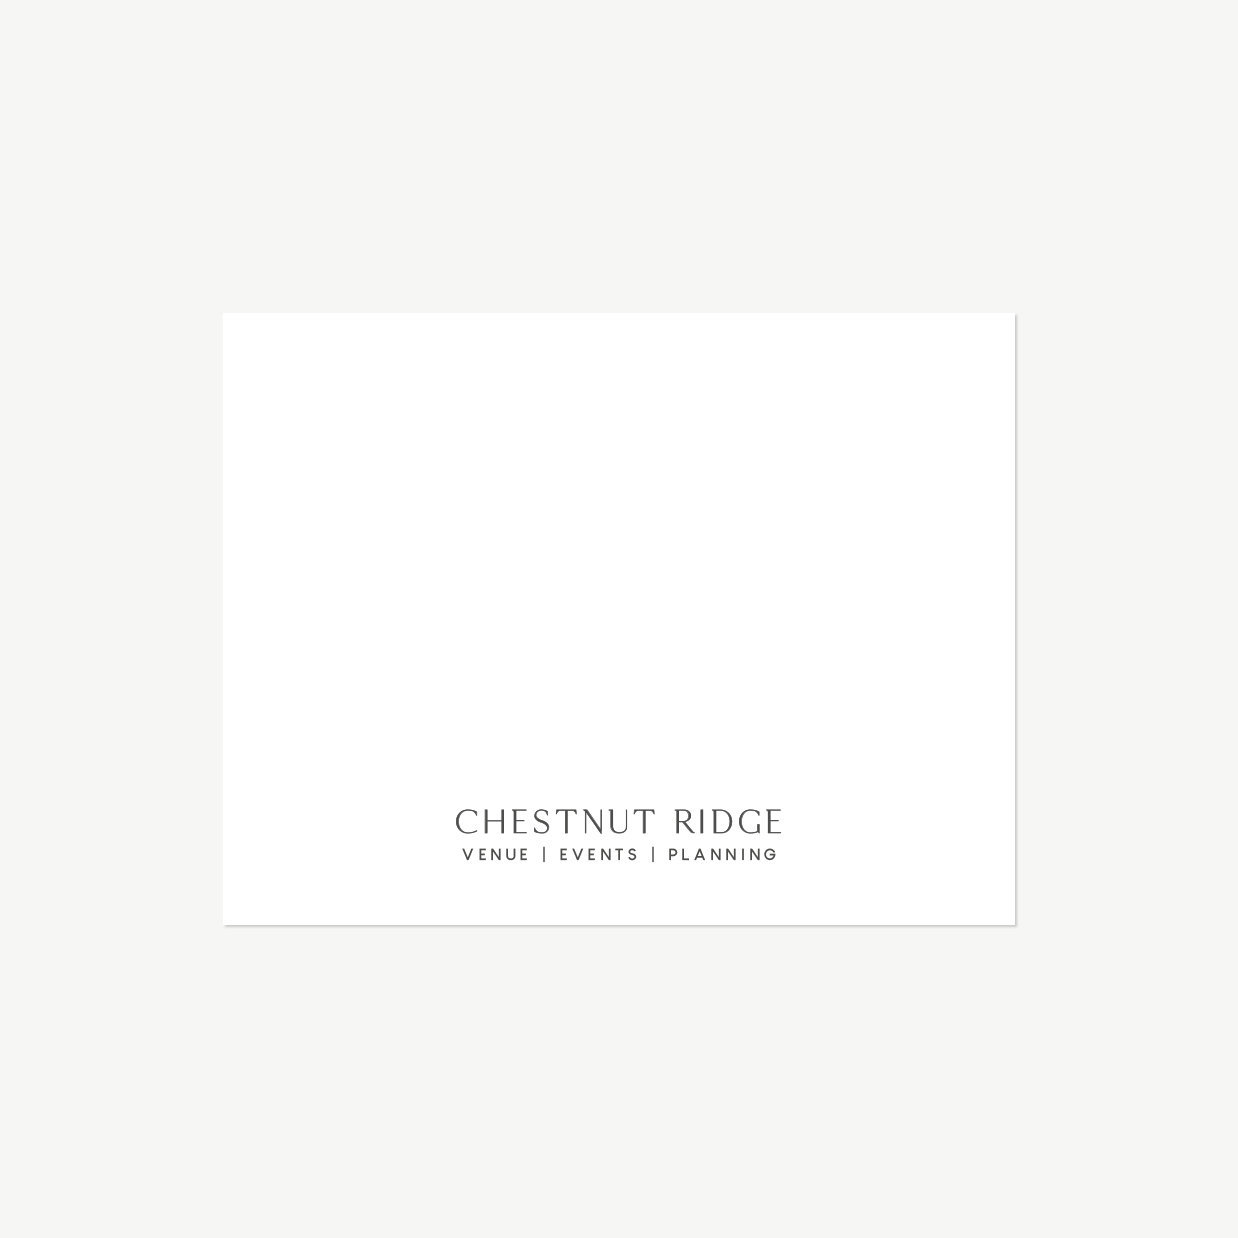 ChestnutRidge_Notecard_v01